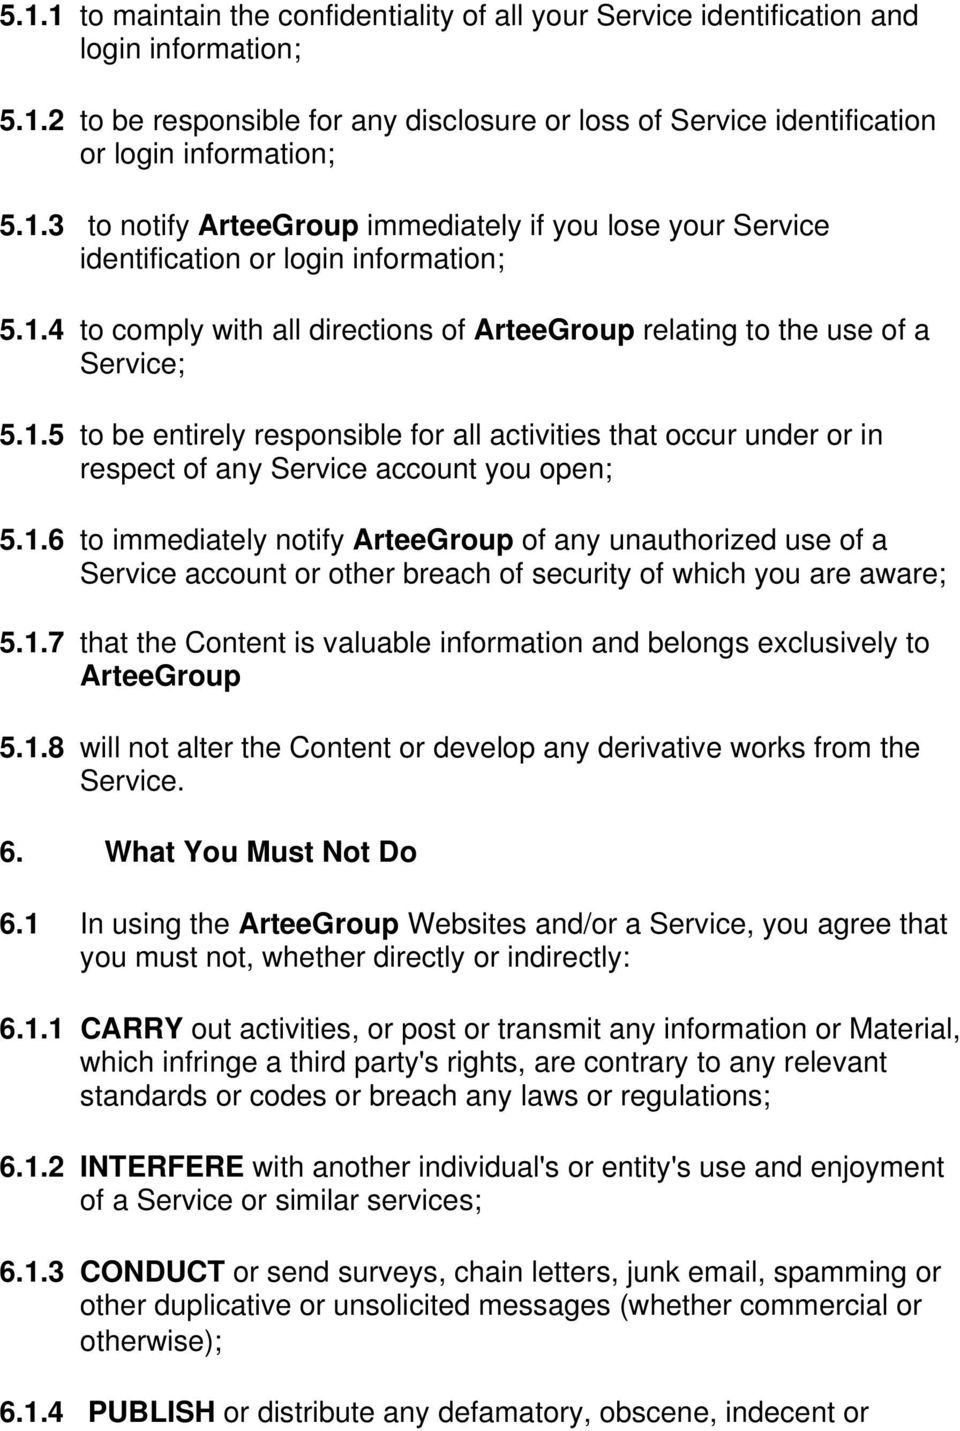 1.6 to immediately notify ArteeGroup of any unauthorized use of a Service account or other breach of security of which you are aware; 5.1.7 that the Content is valuable information and belongs exclusively to ArteeGroup 5.